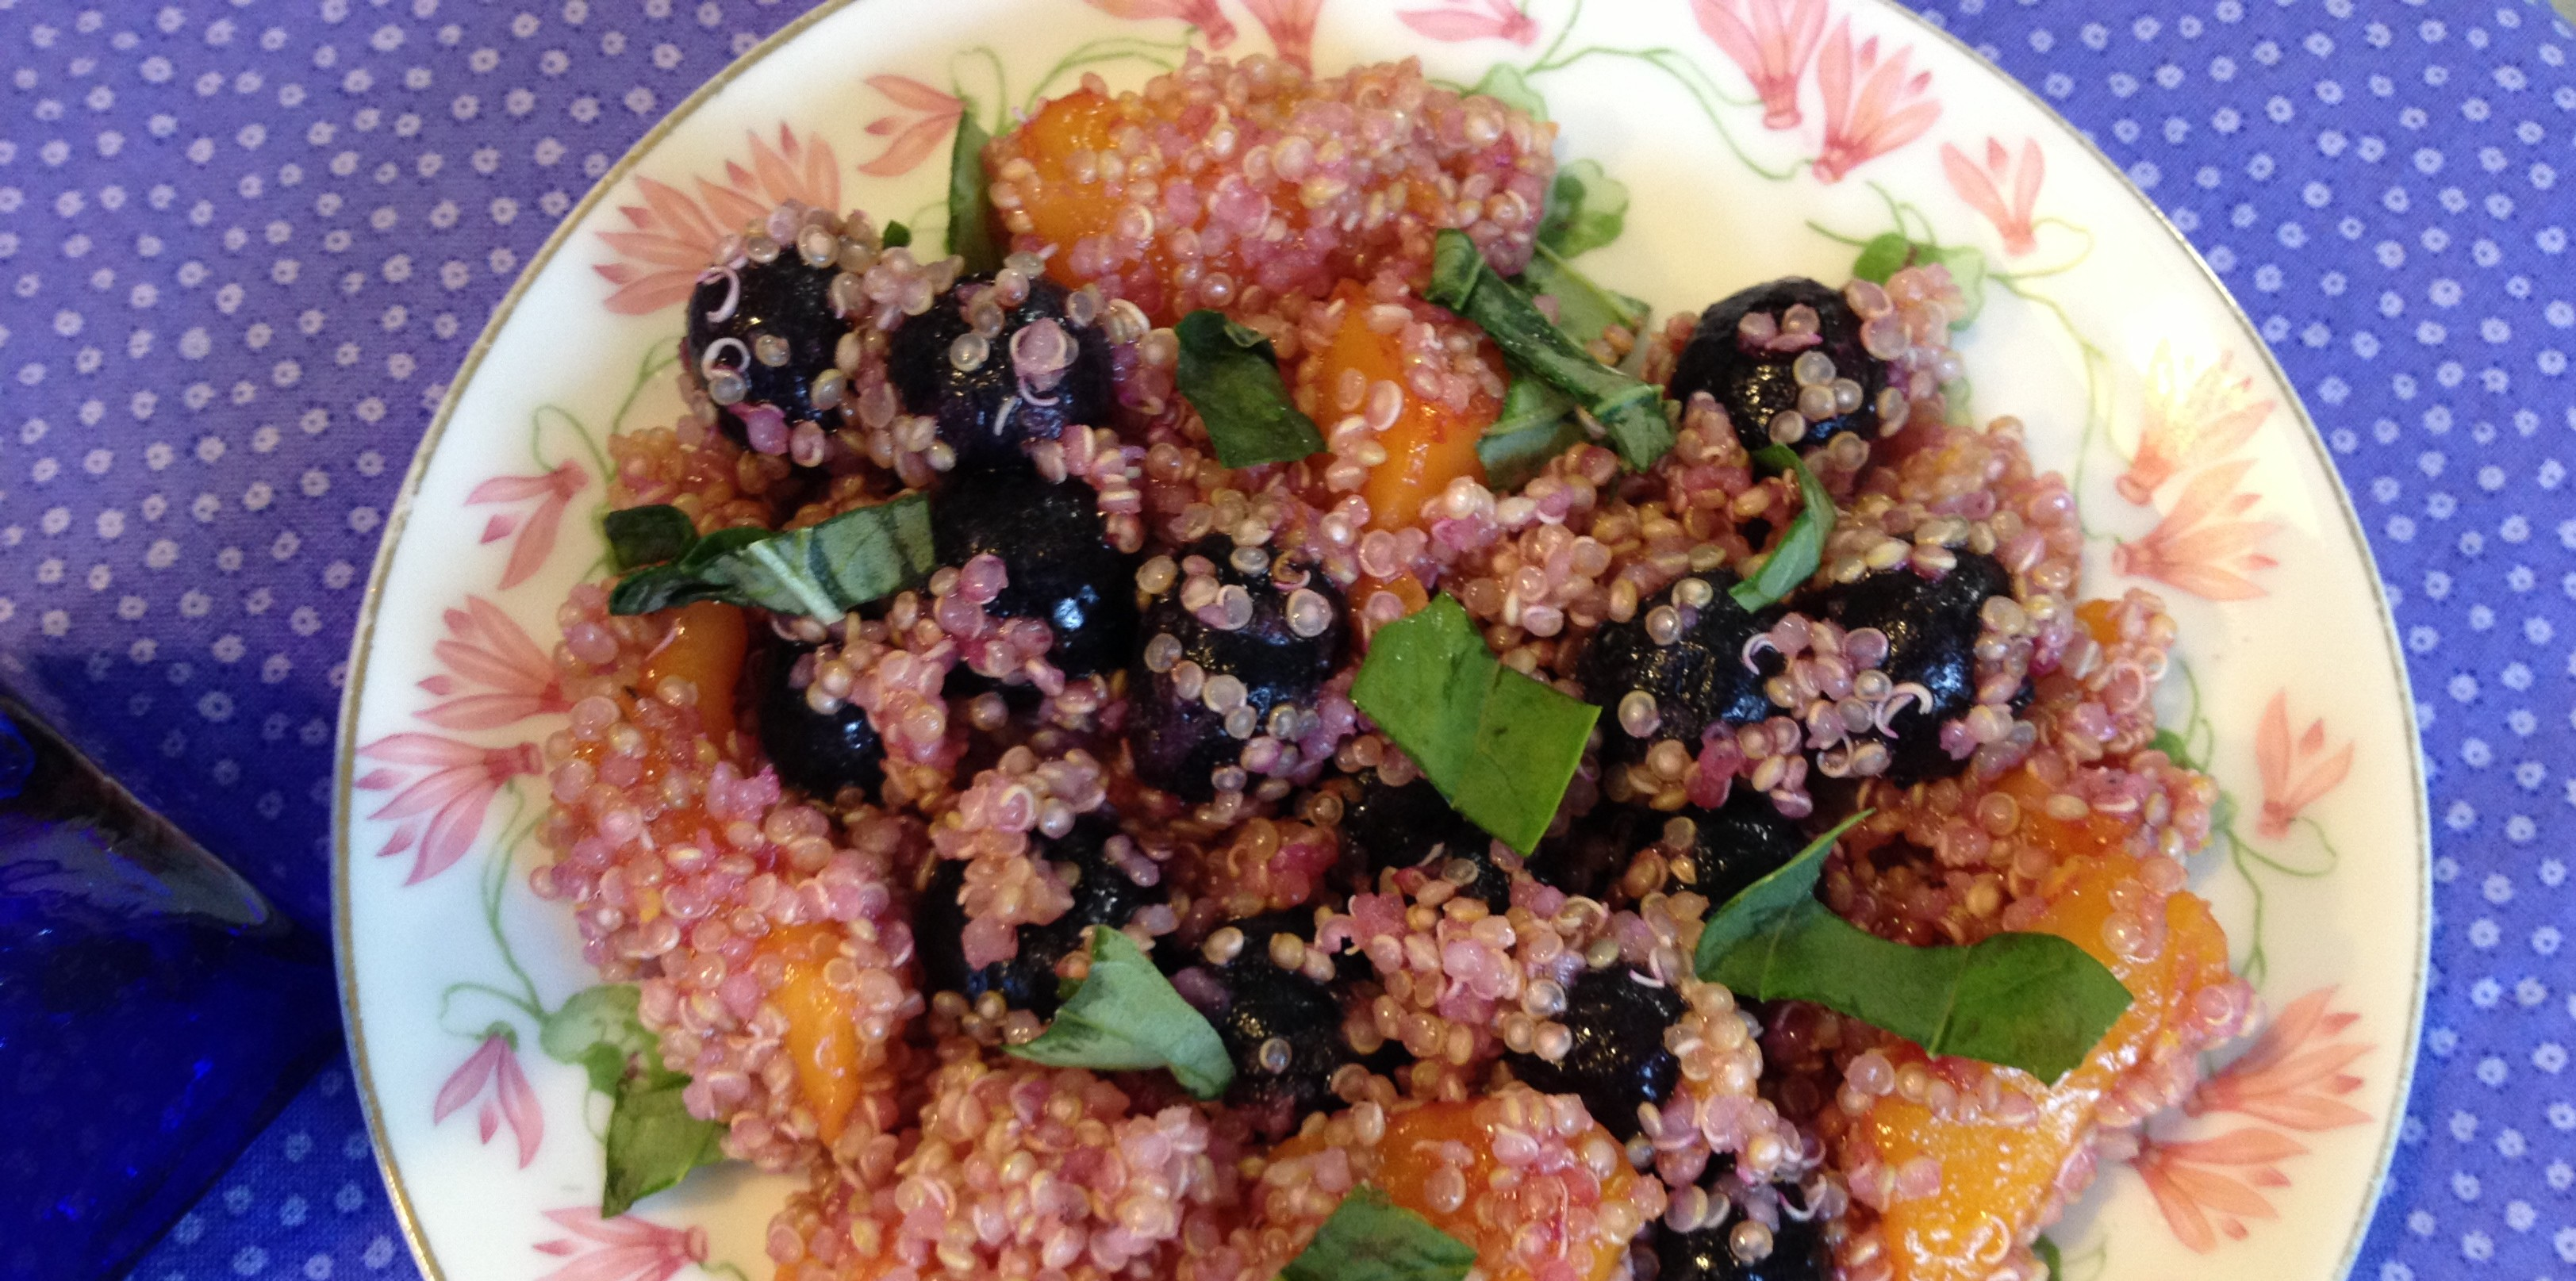 Quinoa Salad with Blueberries and Mango's